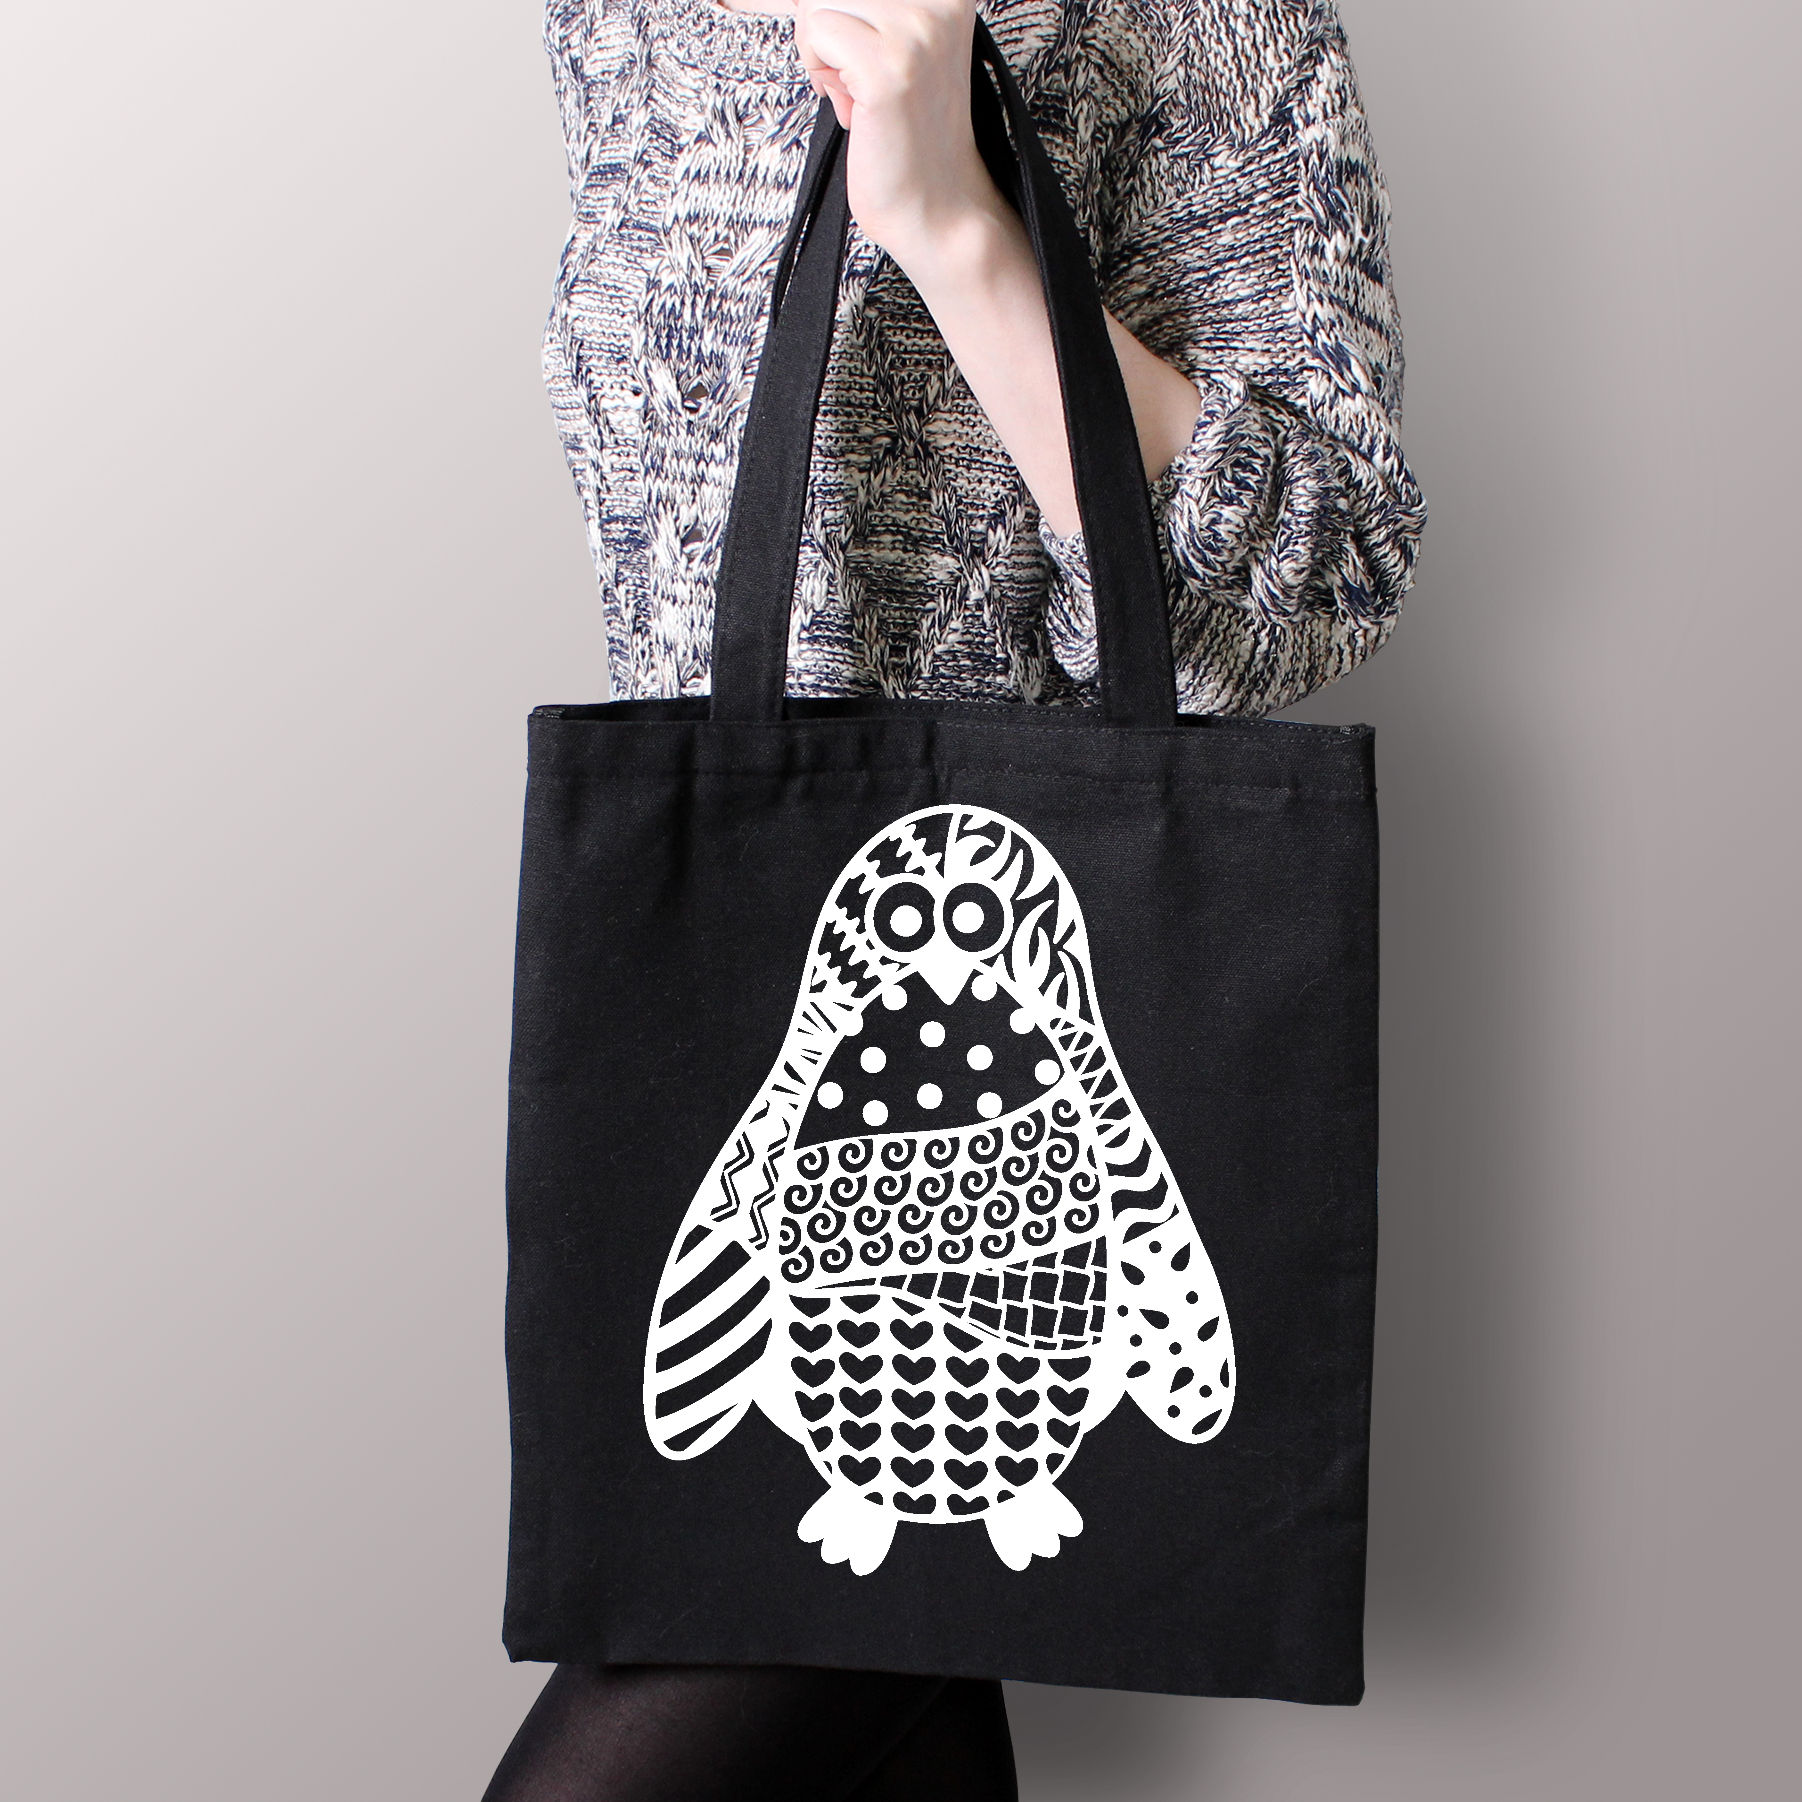 Penguin SVG with Doodle patterns example image 2